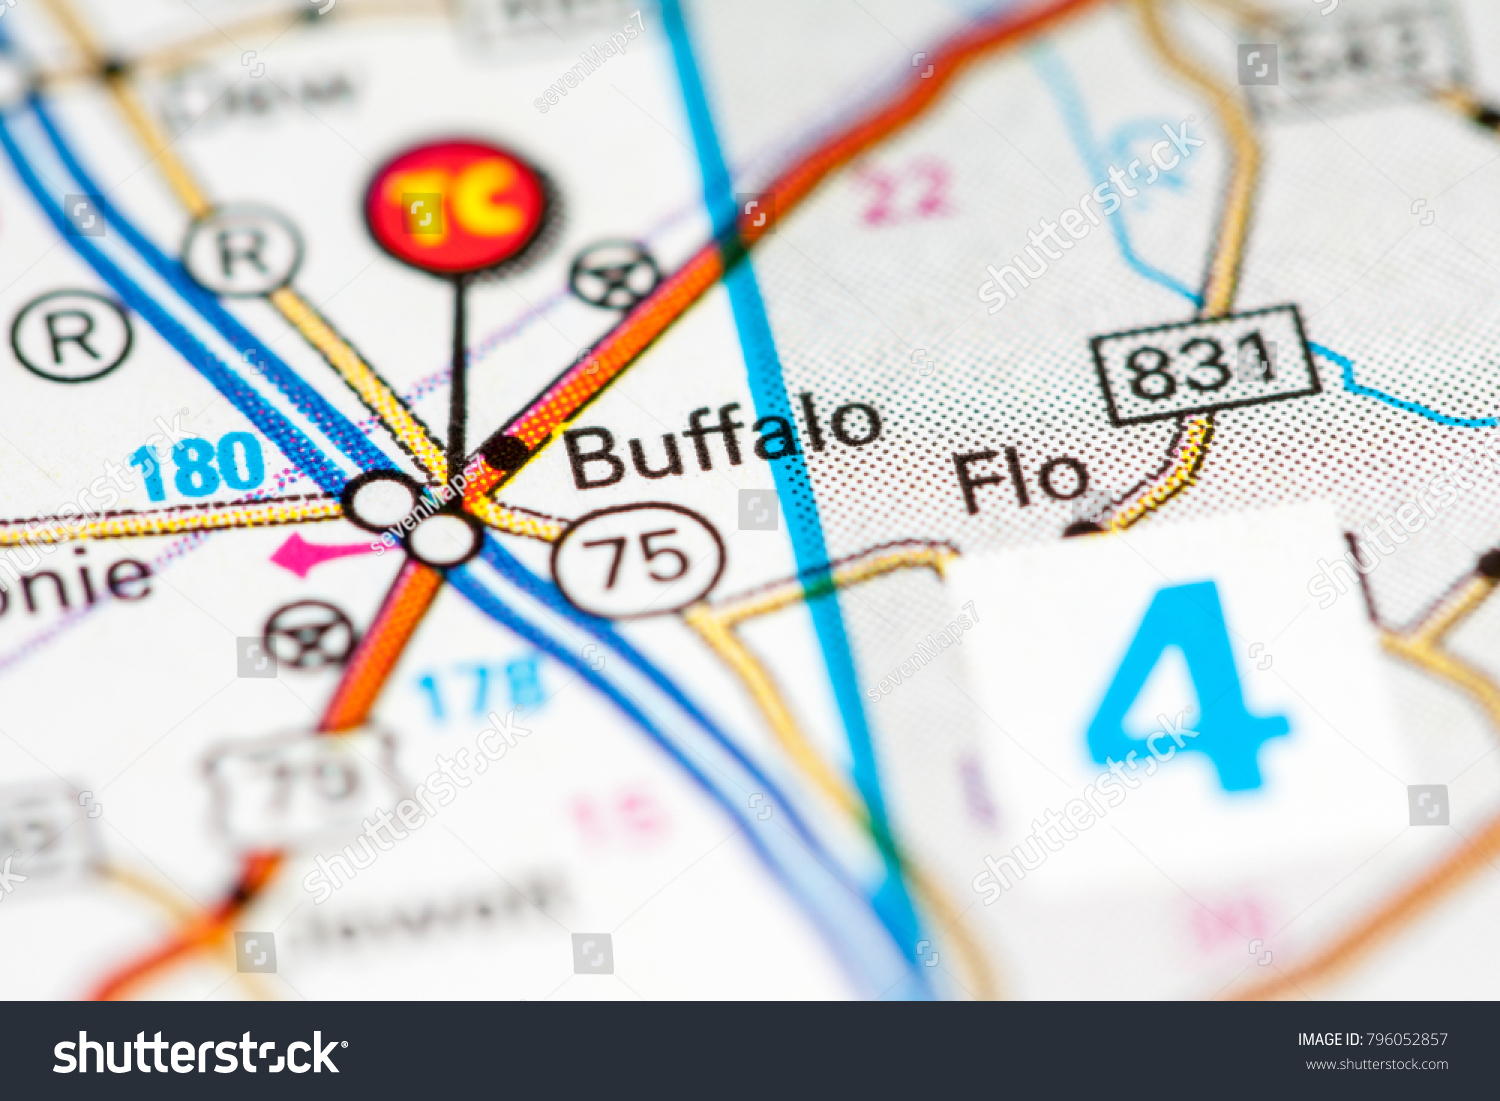 Buffalo Texas Usa On Map Stock Photo Edit Now 796052857 Shutterstock